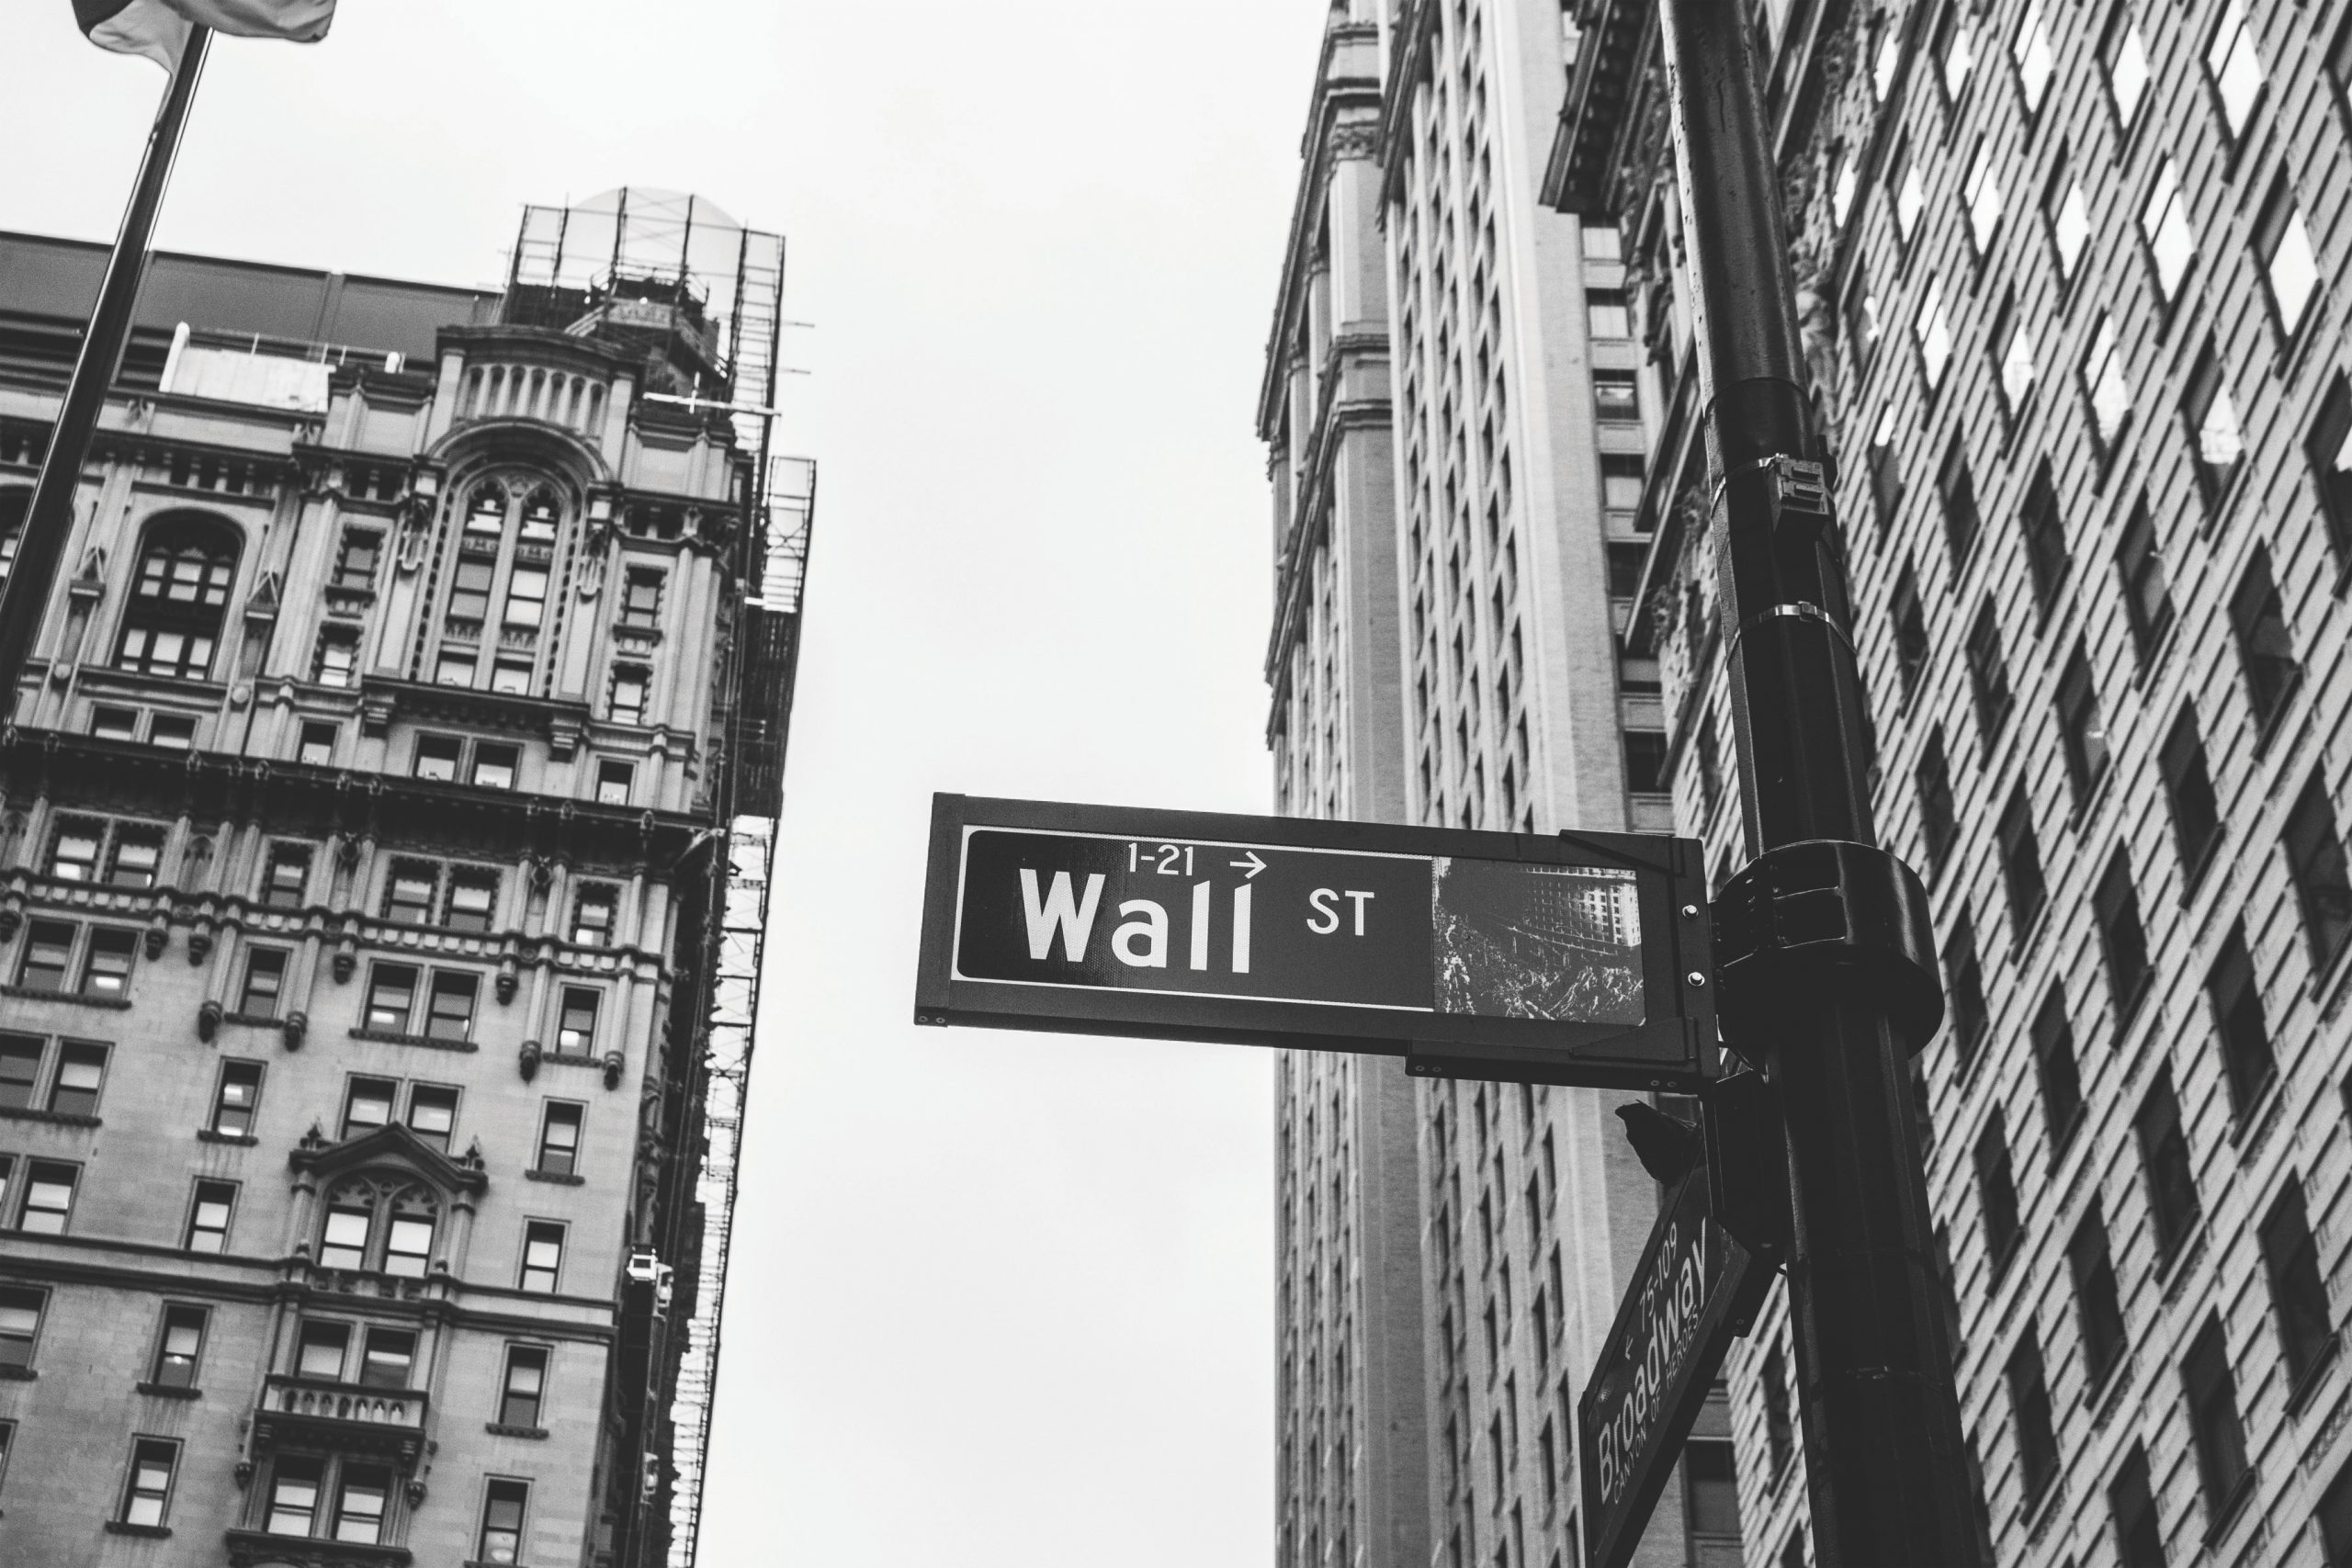 Sightline Conversations: The Dichotomy Between Wall Street and Main Street